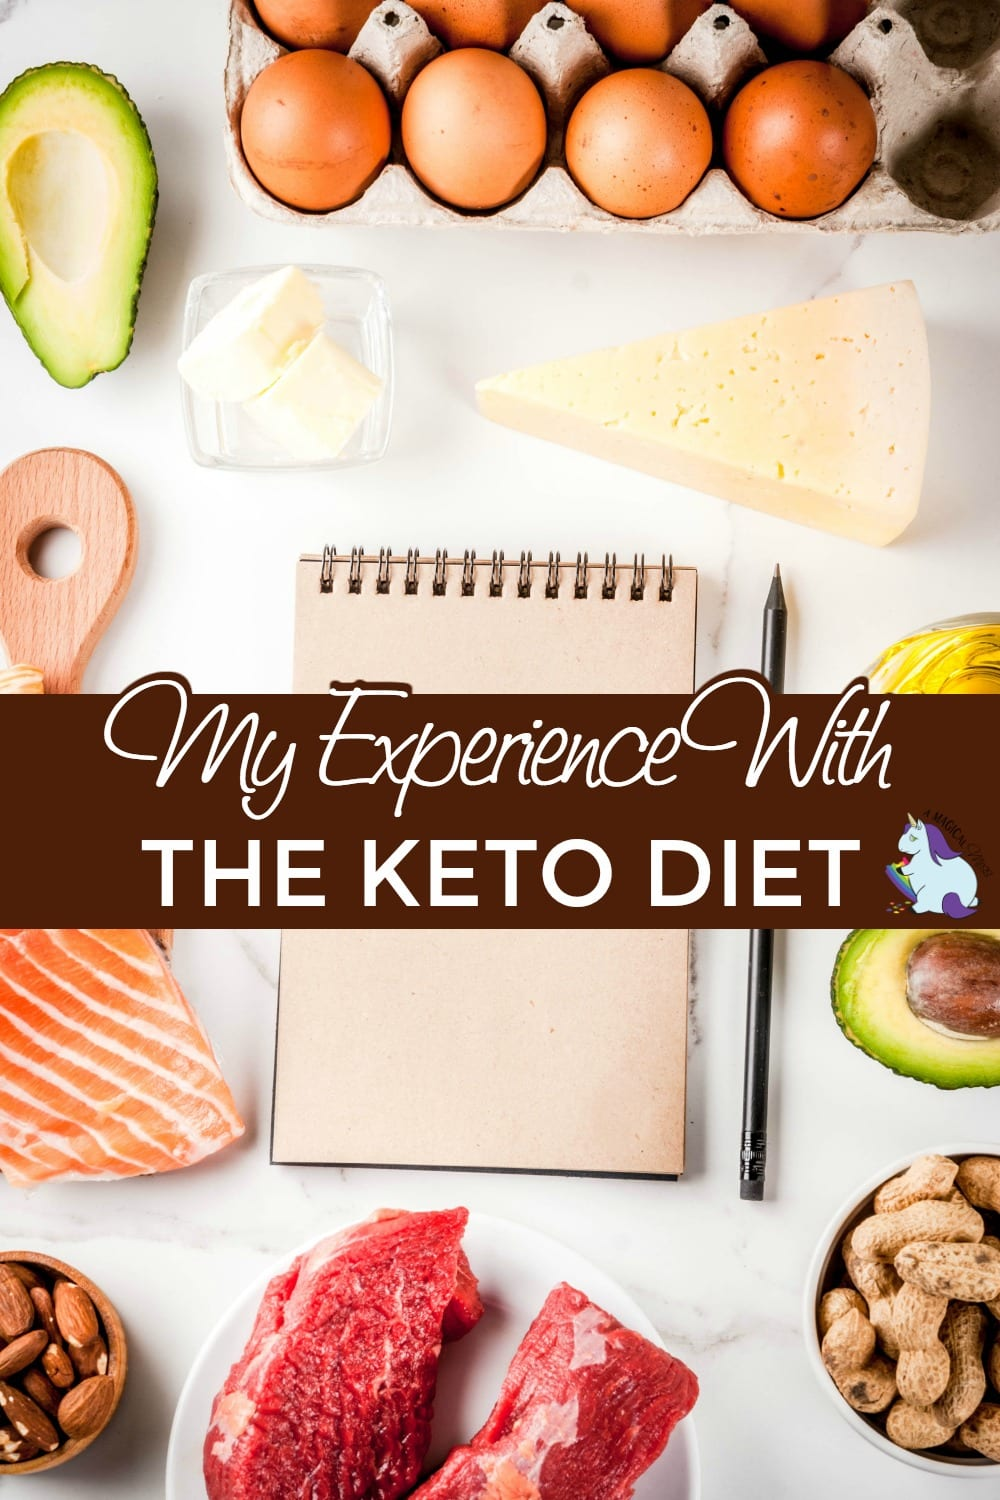 Low carb foods, healthy fat foods surrounding a notebook for the keto diet